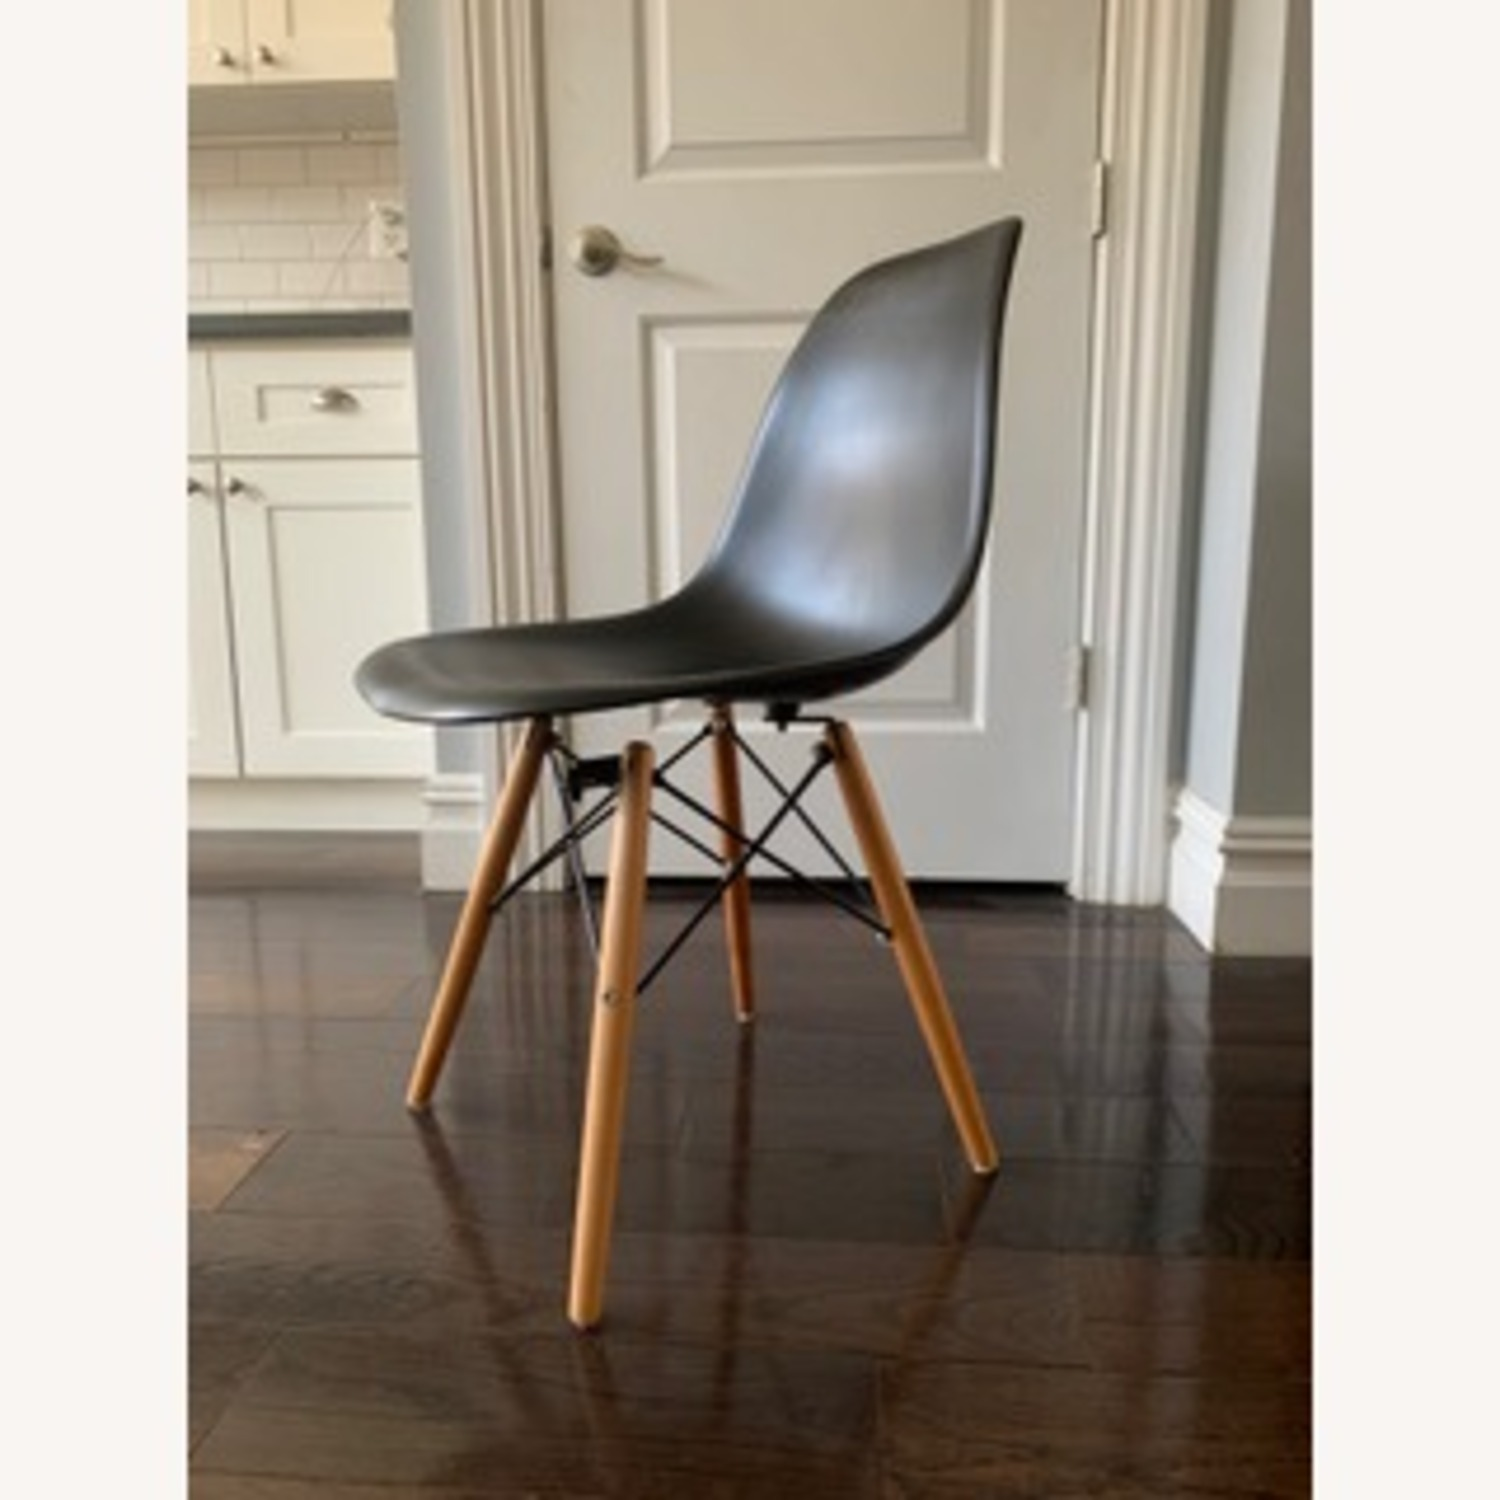 Eames DSW Molded Plastic Side Chairs - Replica x 5 - image-1